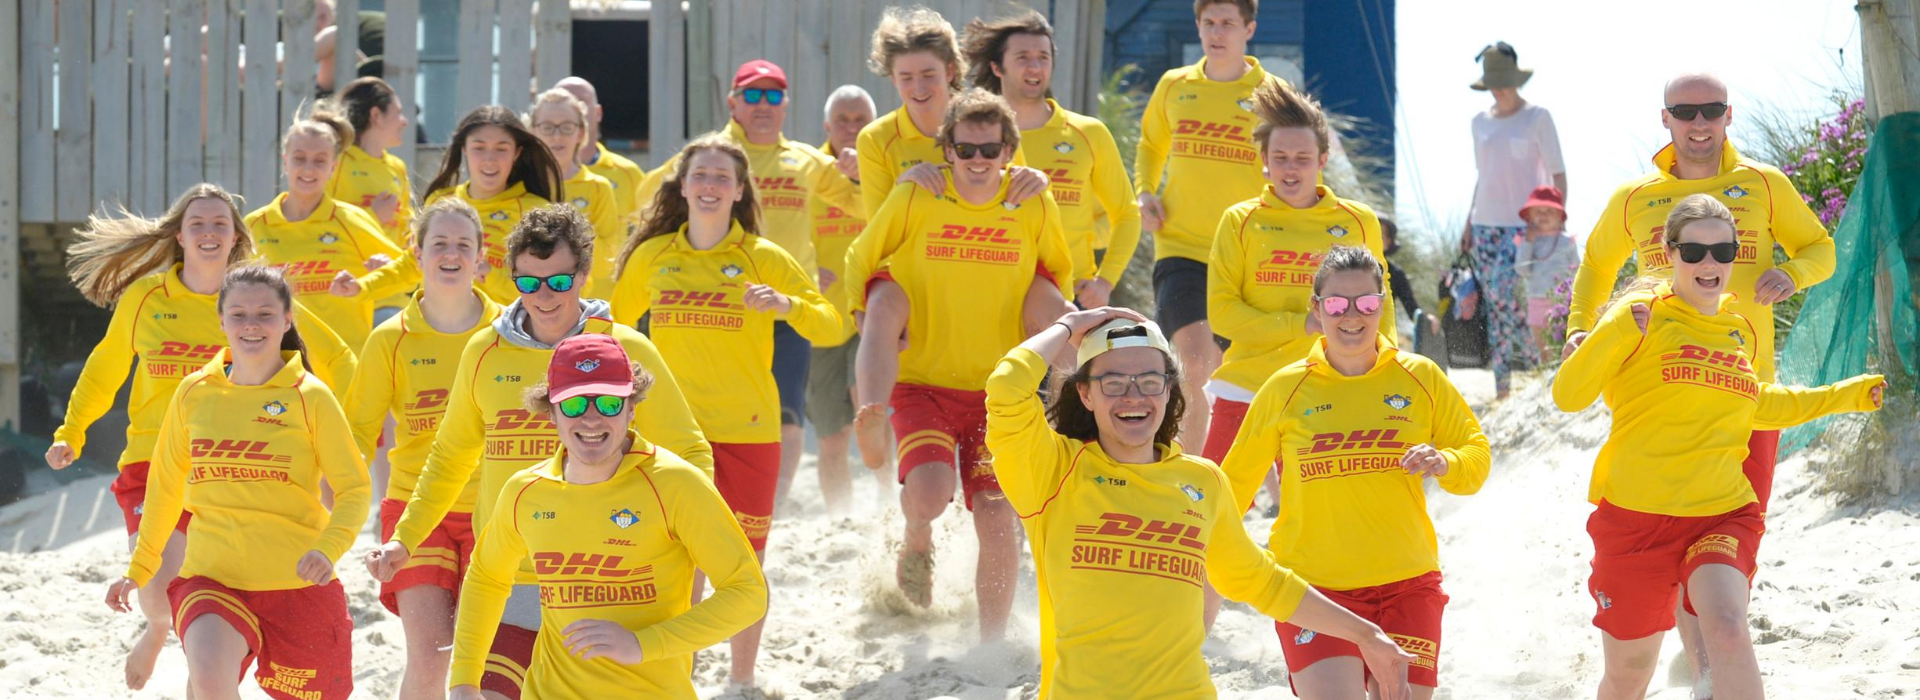 Southern Region Running Happy Lifeguards Shot from Surf Club